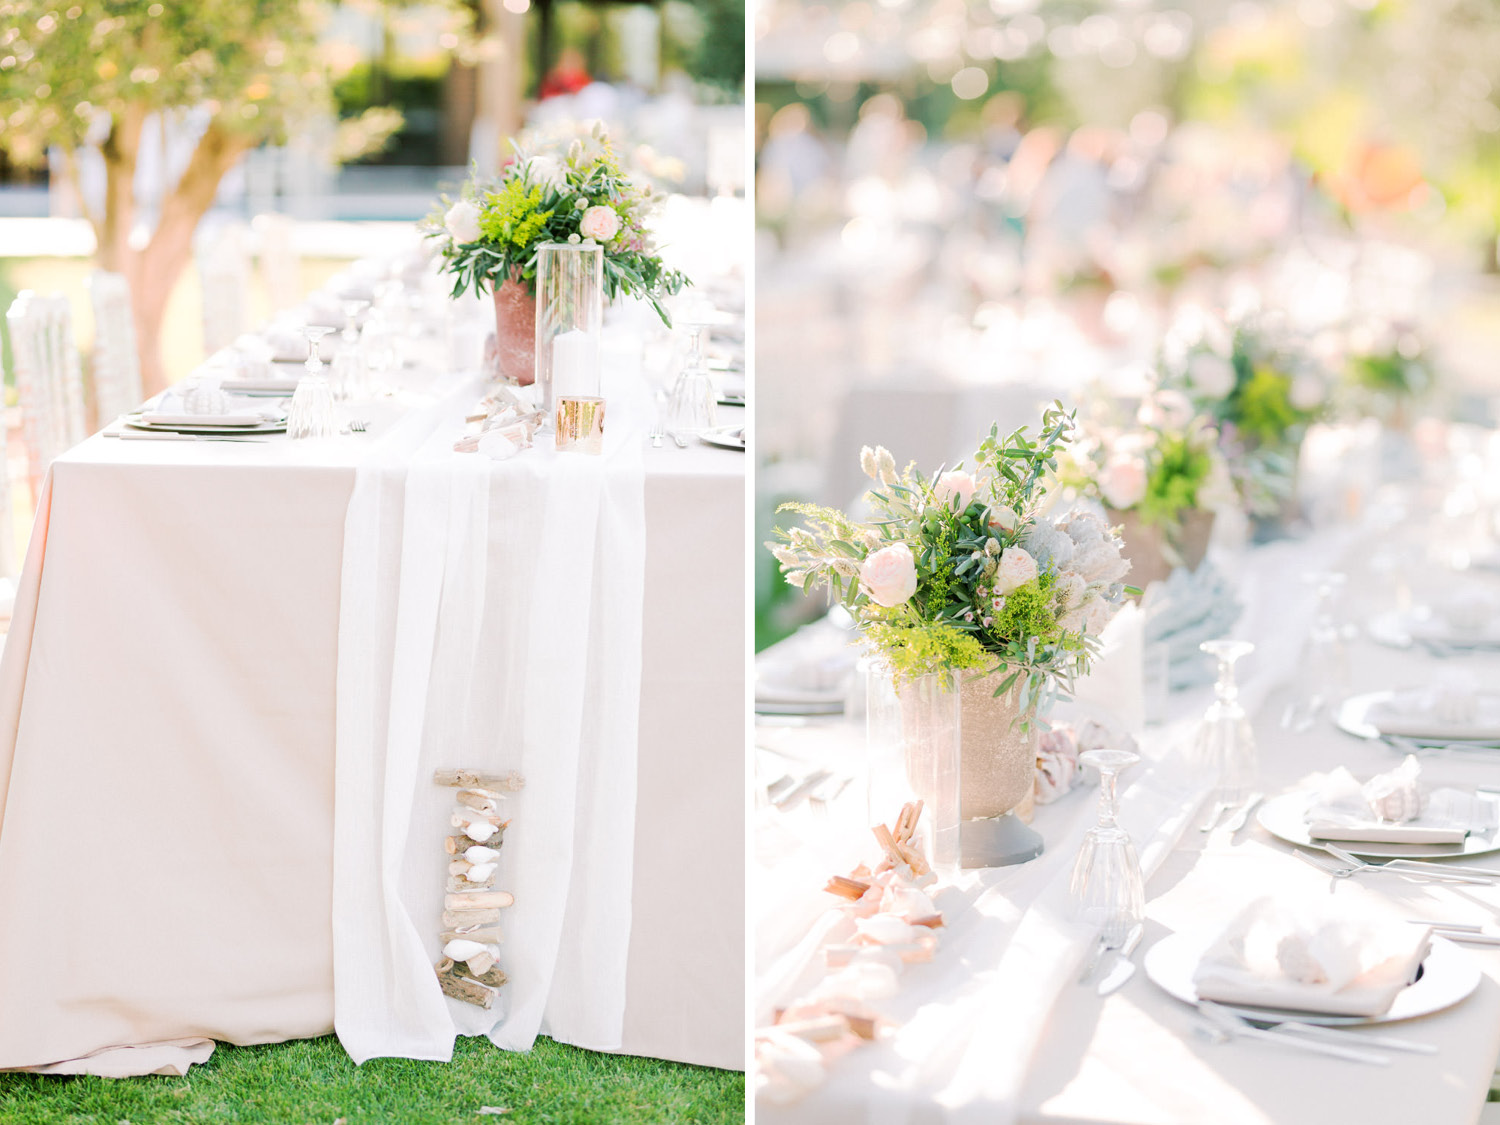 Mediterranean Seaside Wedding Table Design